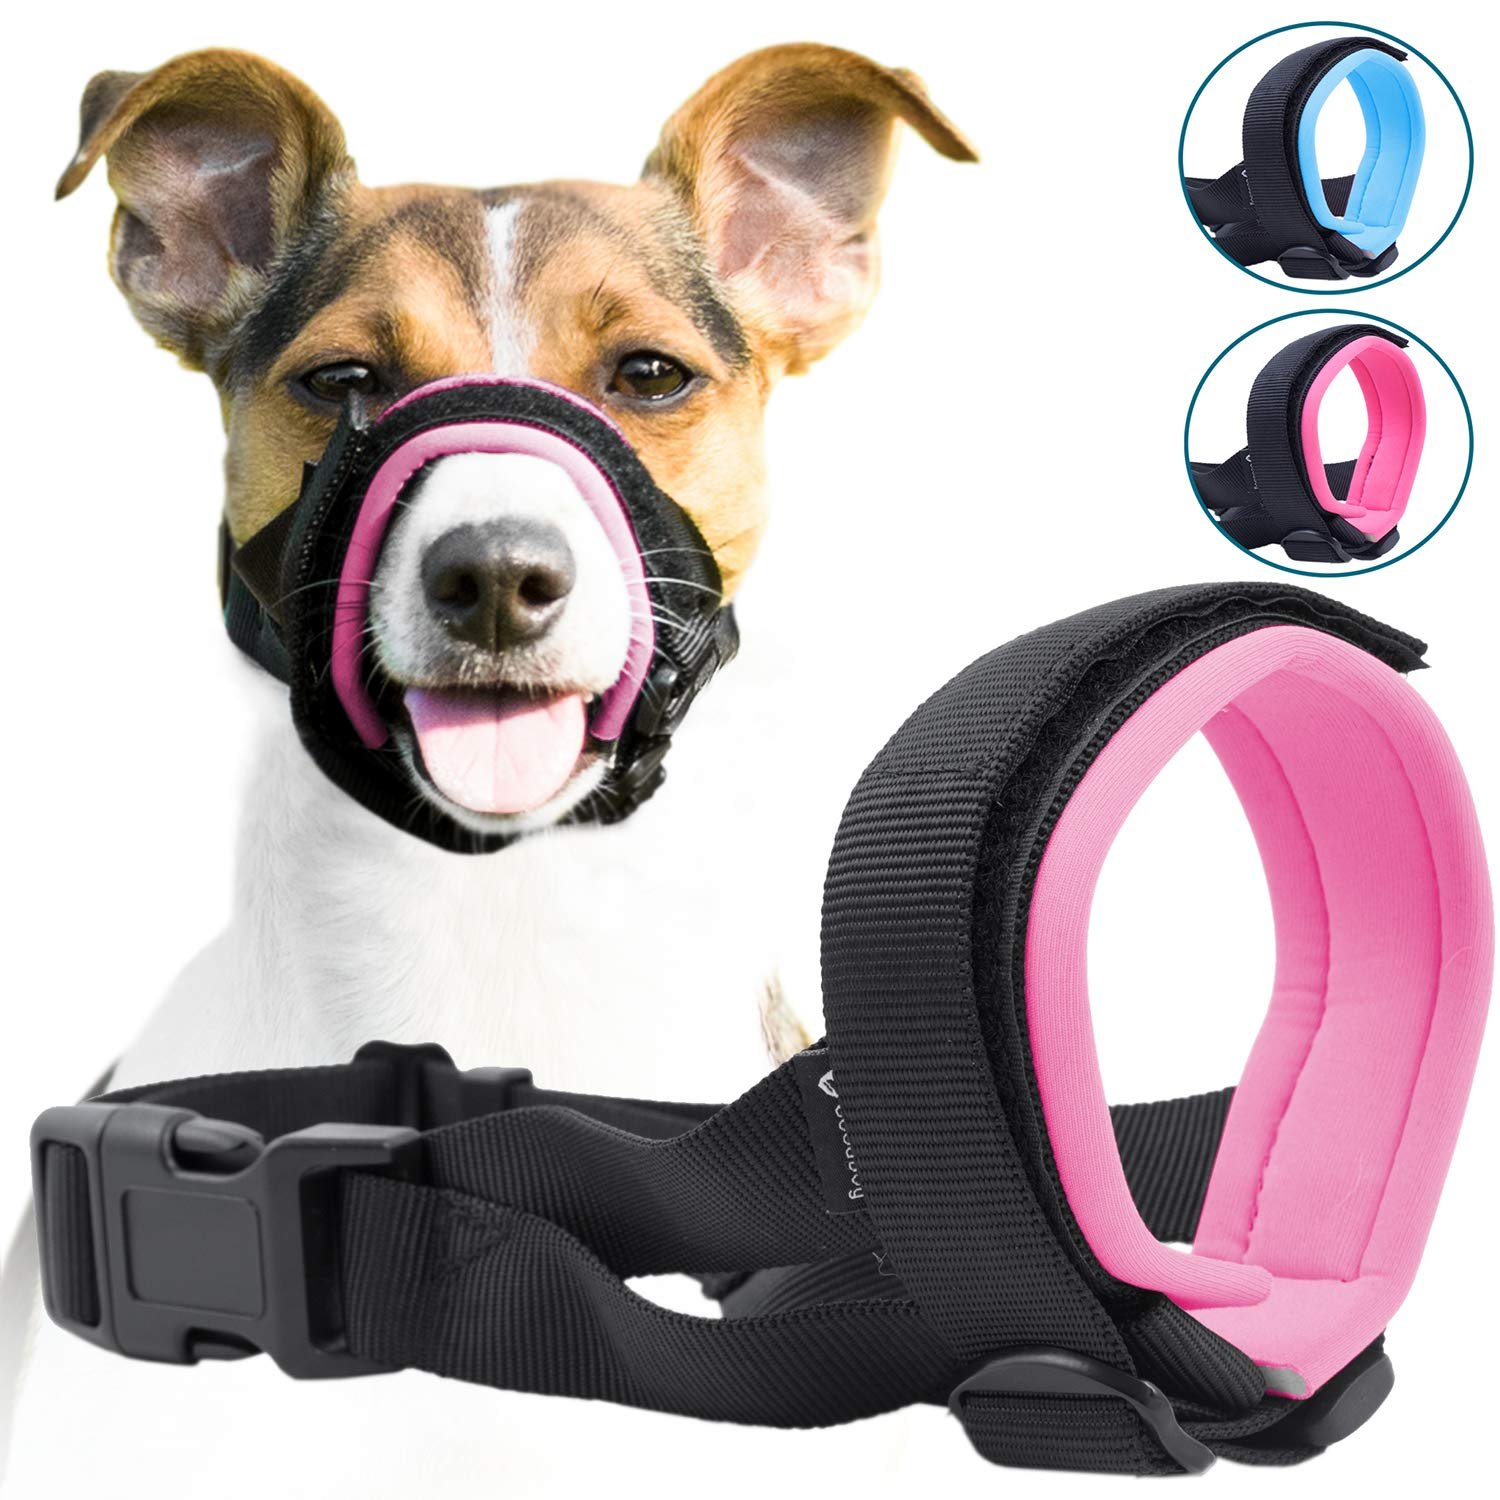 Gentle Muzzle Guard Dogs